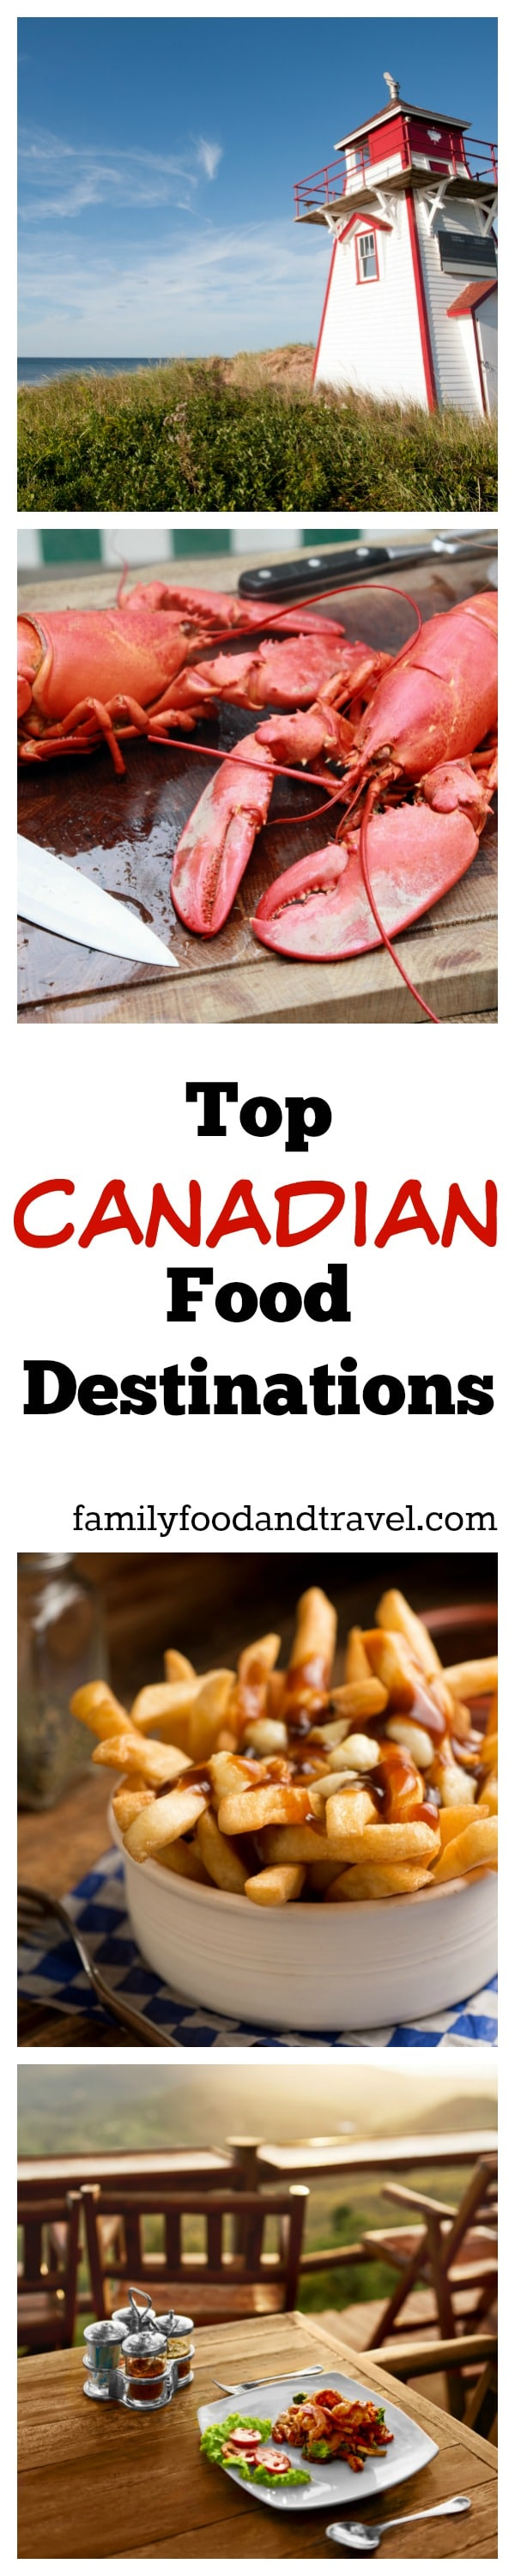 Top Canadian Food Destinations